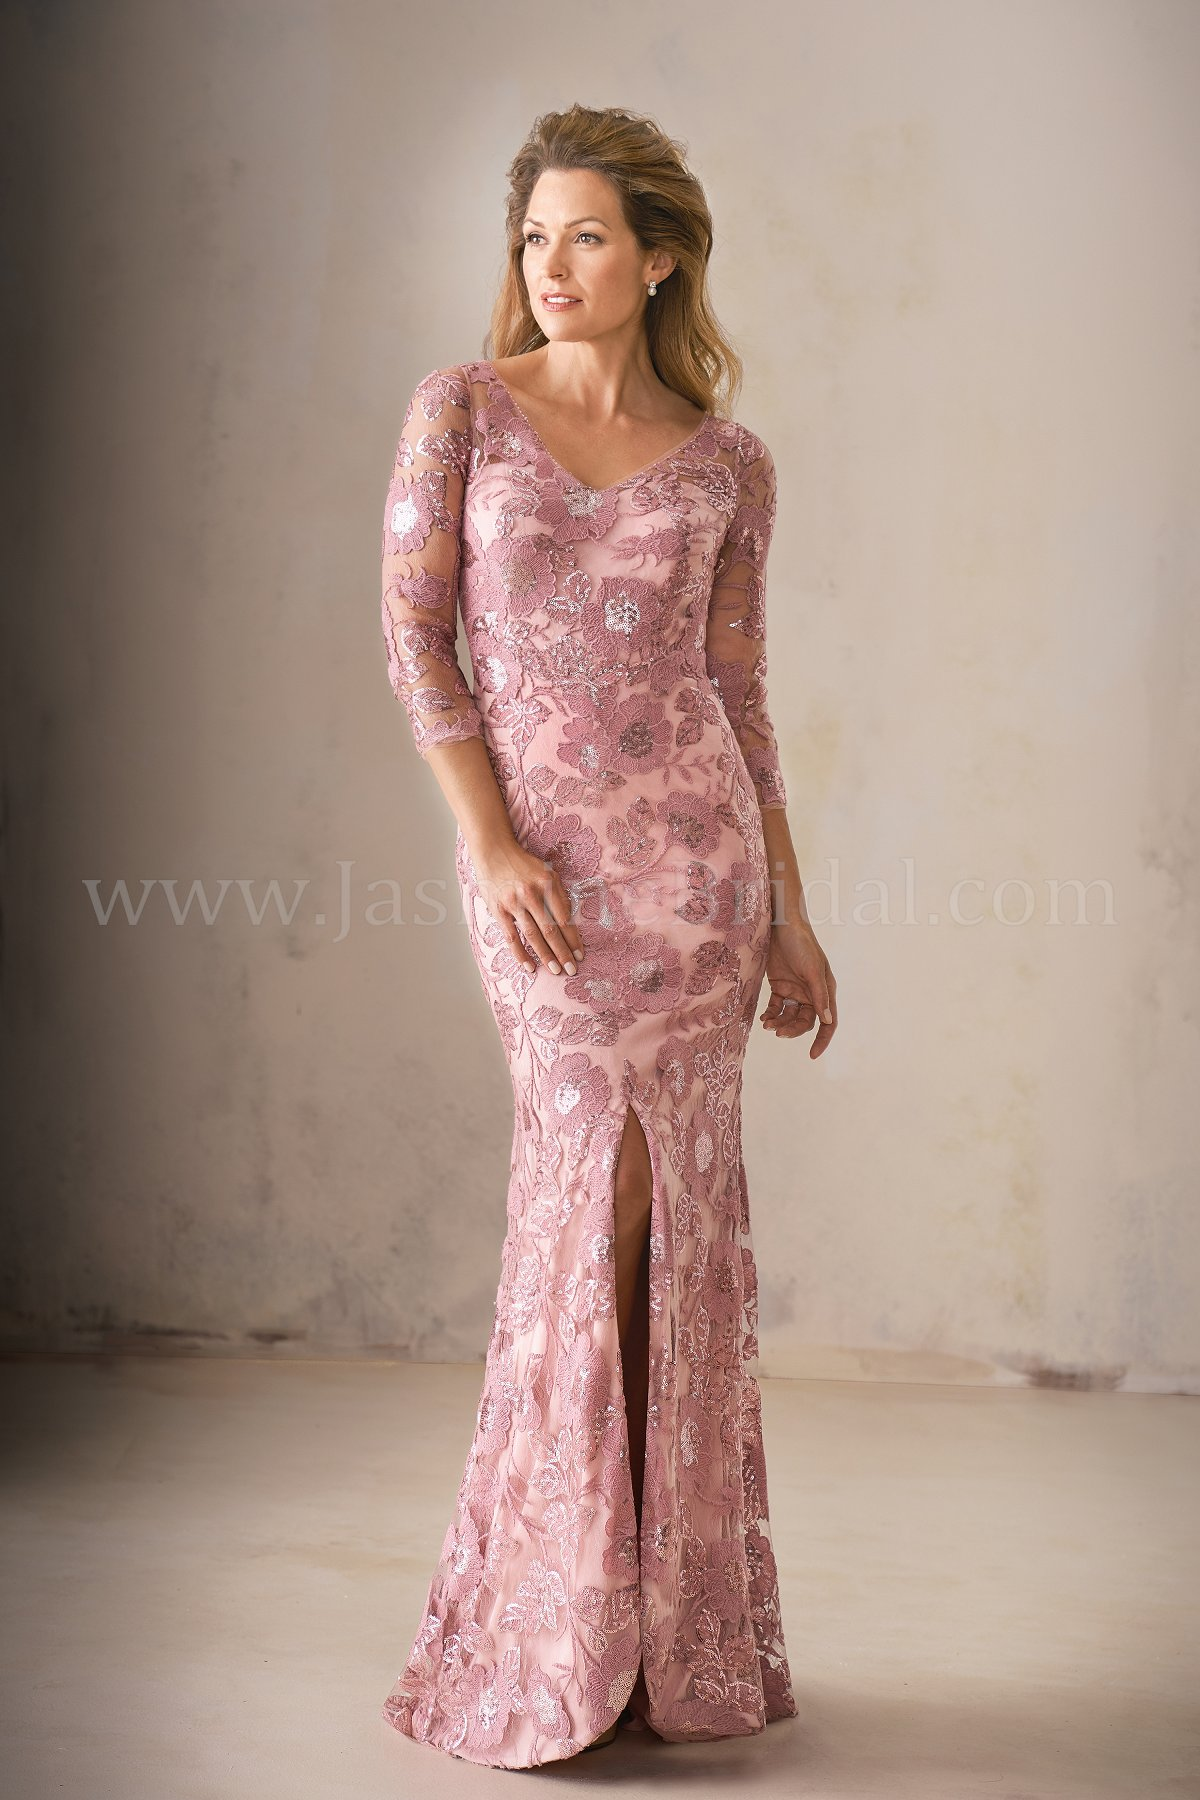 ea293687e71d K208011 Long V-neck Sequin Lace MOB Dress with Sleeves and Slit